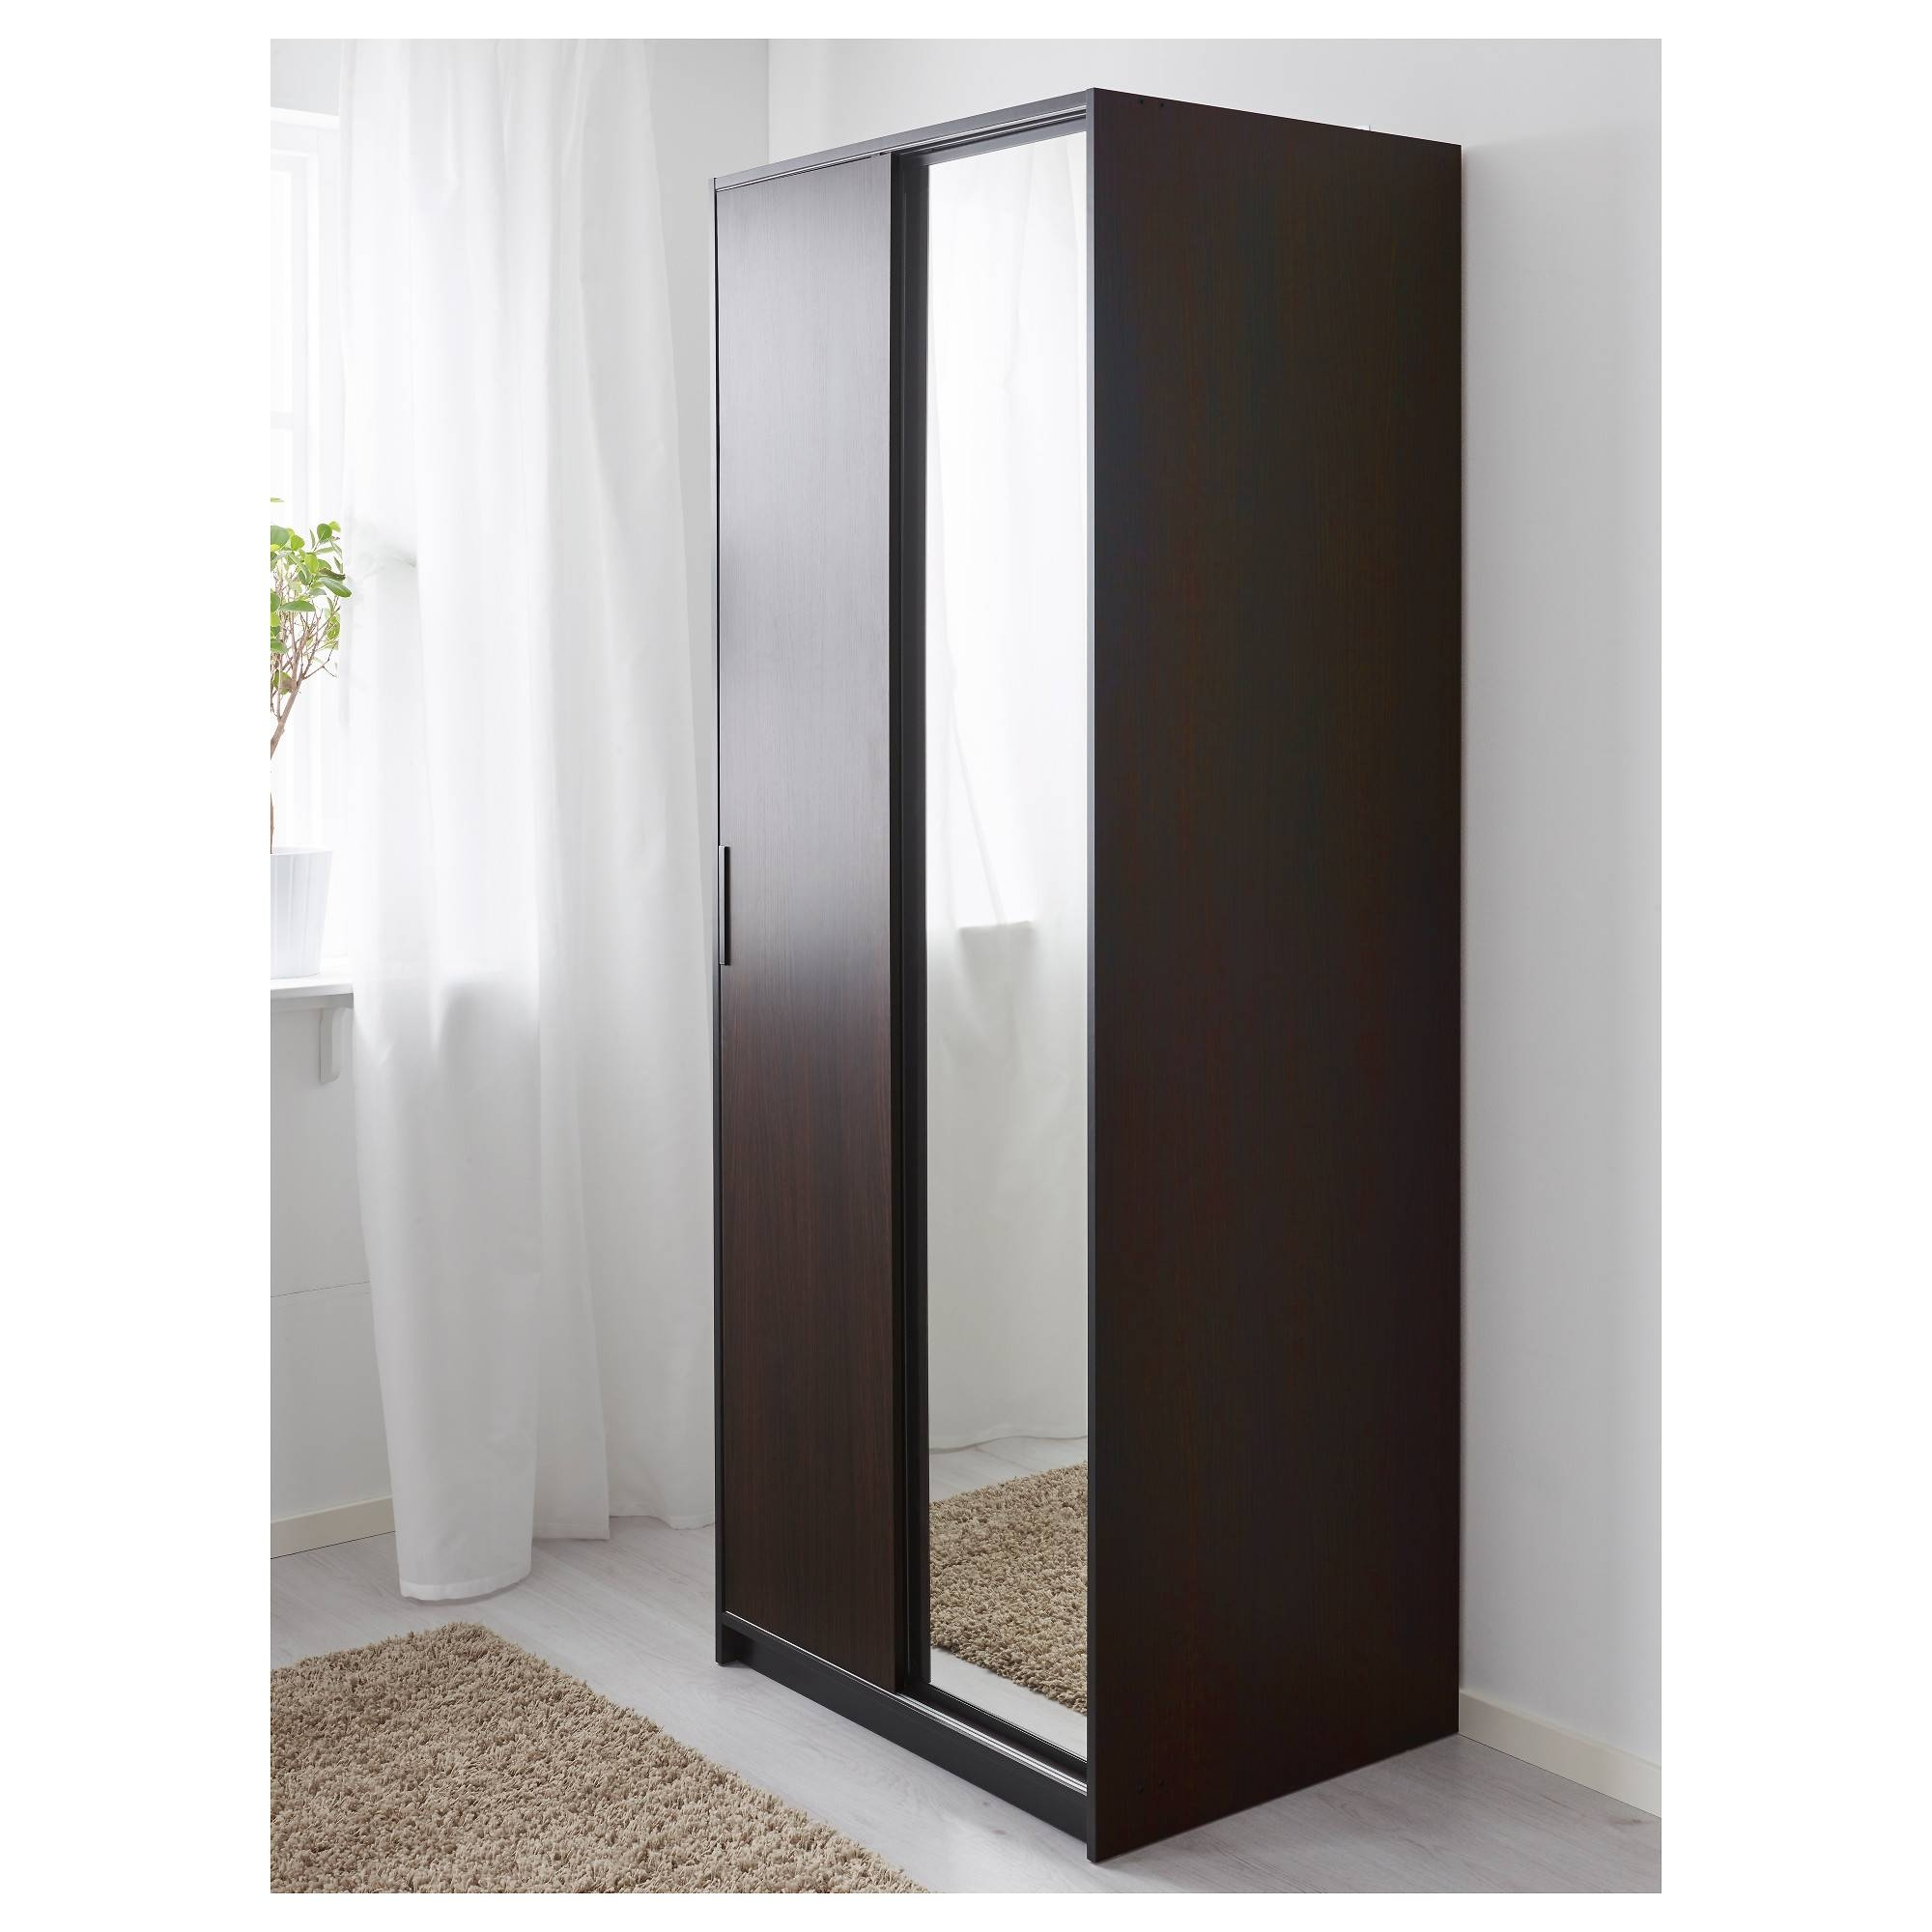 Trysil Wardrobe Dark Brown/mirror Glass 79X61X202 Cm - Ikea intended for Dark Wood Wardrobes Ikea (Image 19 of 30)